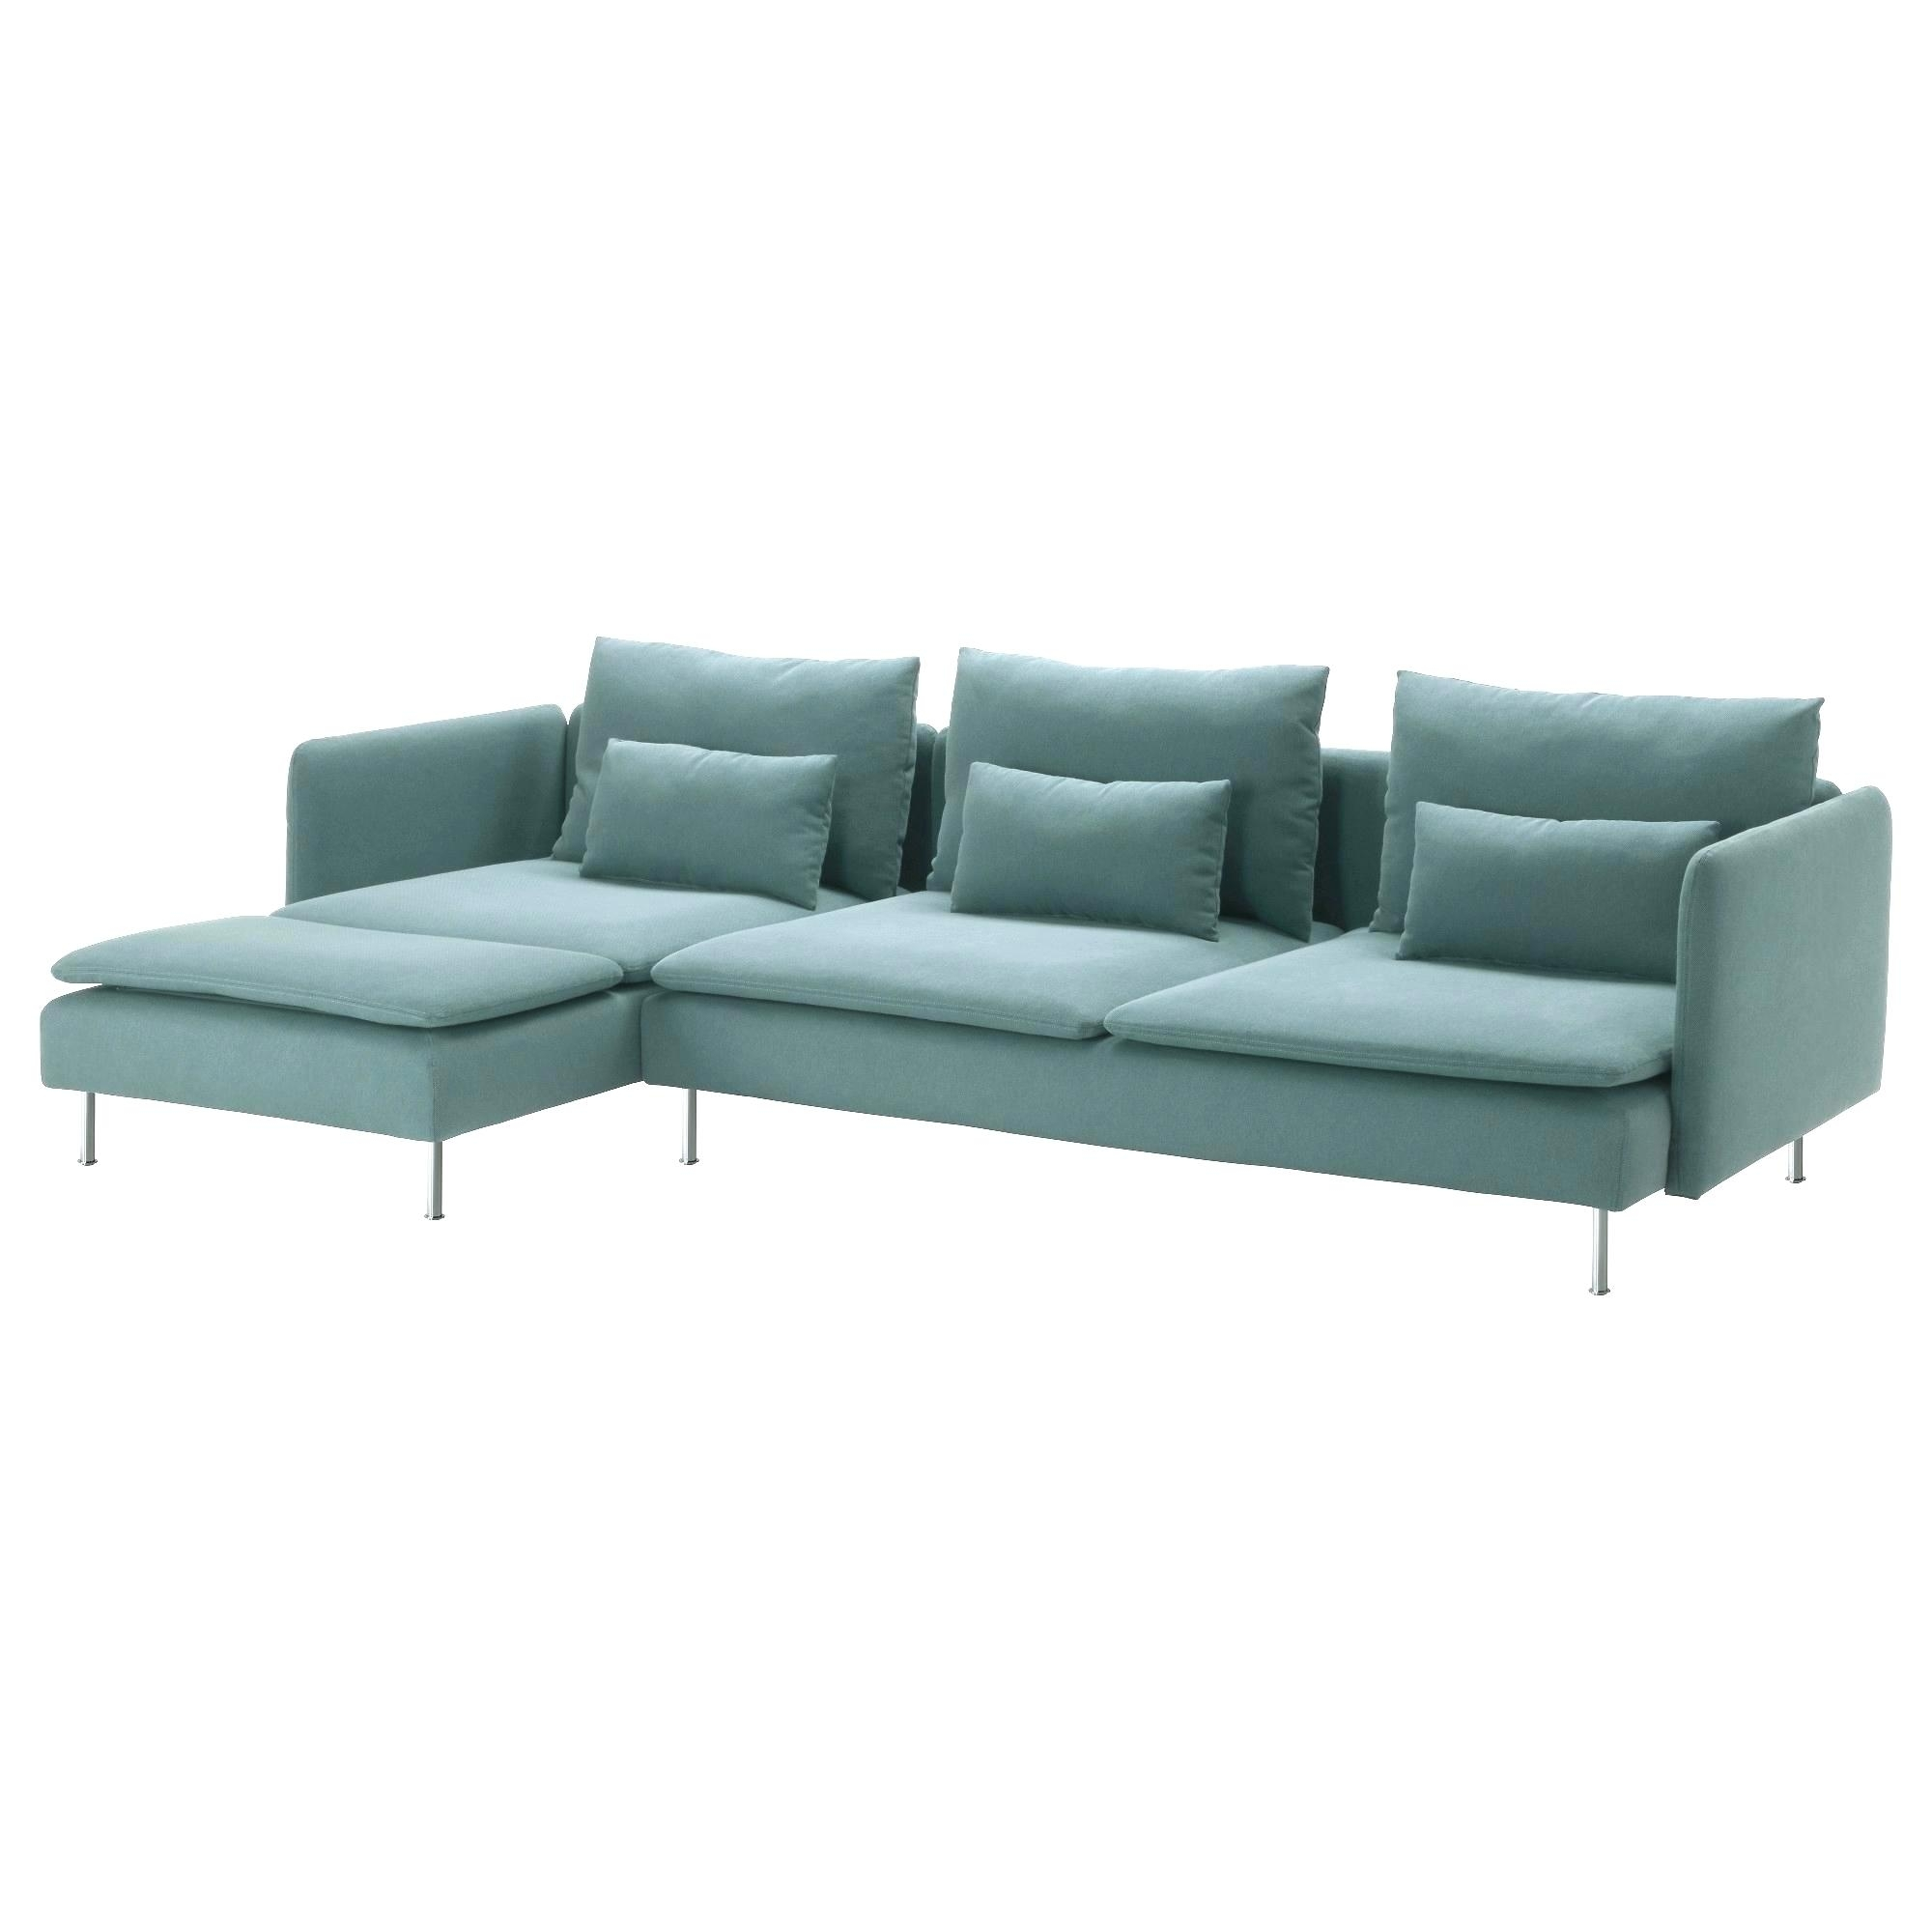 Used Leather Couches For Sale Sectional Couch Vancouver Bc Furniture Intended For Vancouver Bc Canada Sectional Sofas (Image 10 of 10)